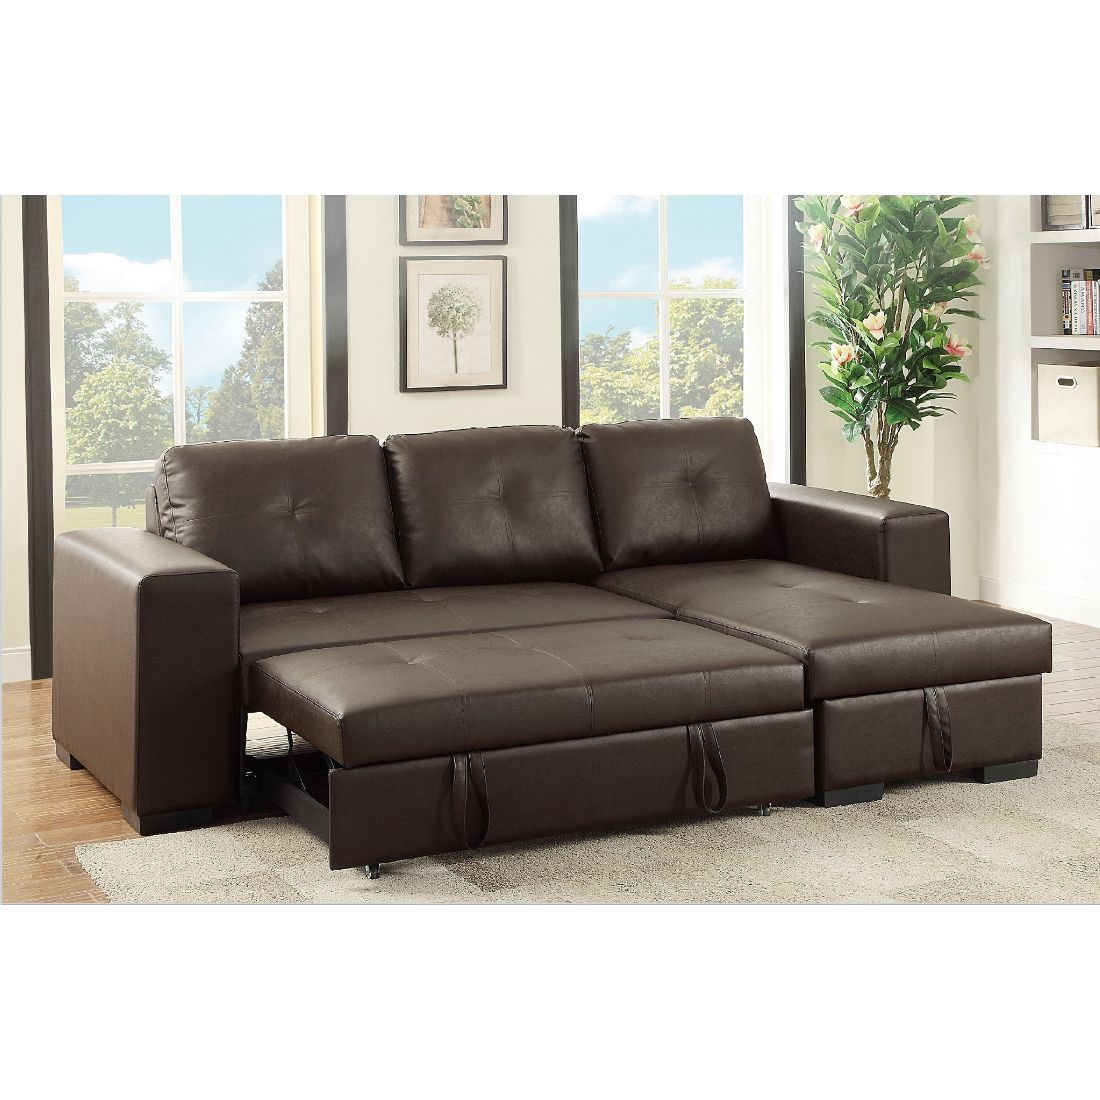 Overstock Com Online Shopping Bedding Furniture Electronics Jewelry Clothing More Sectional Sofa Couch Sleeper Sectional Sectional Sofa